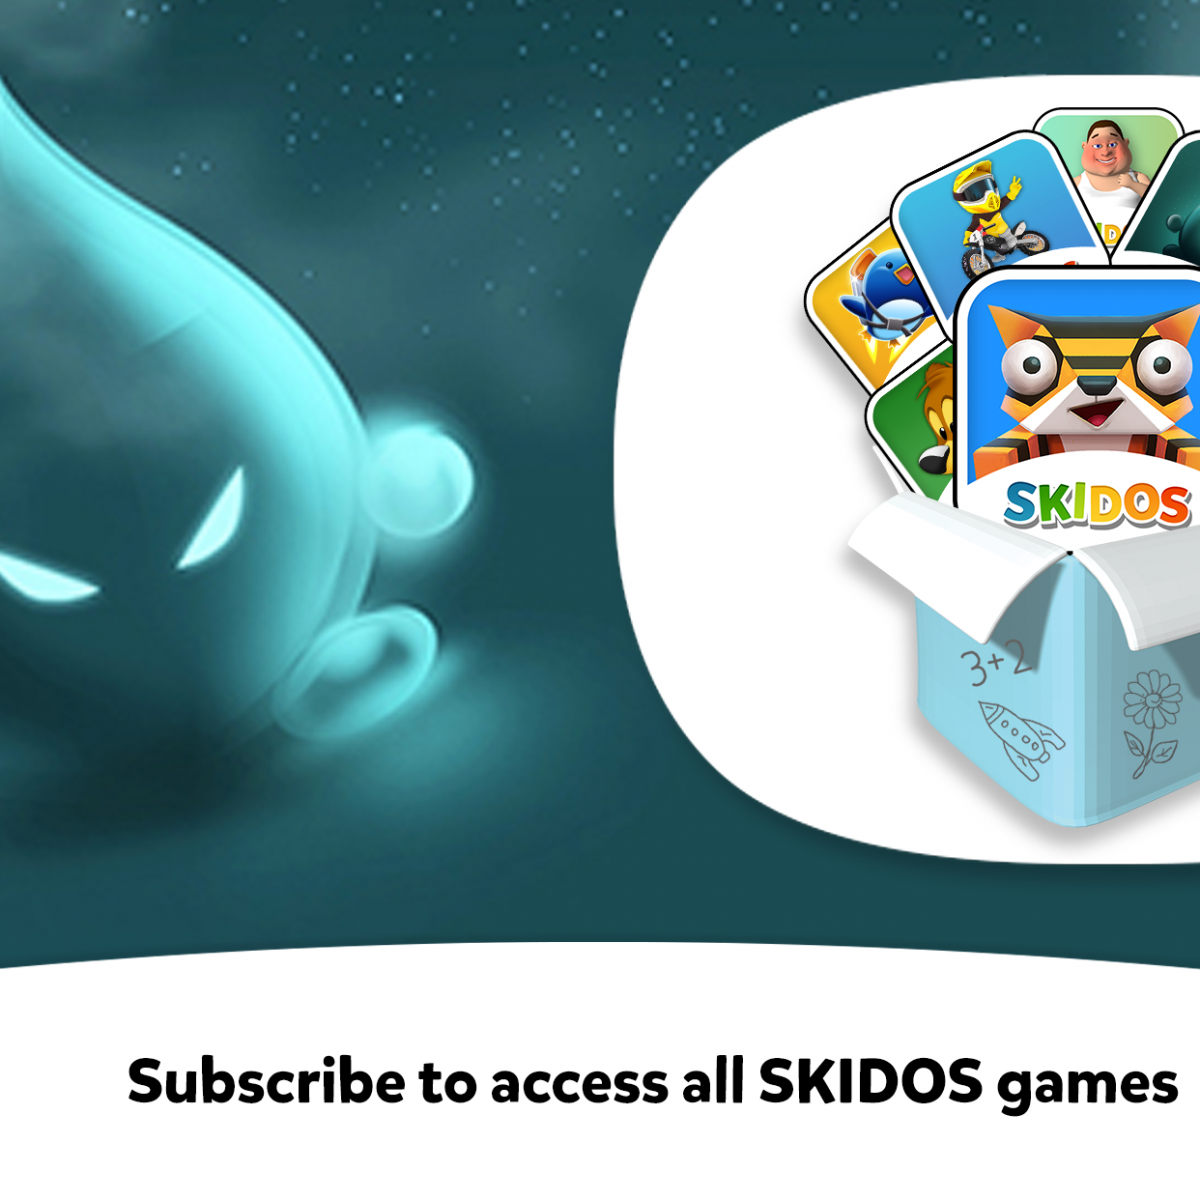 Subscribe SKIDOS Games